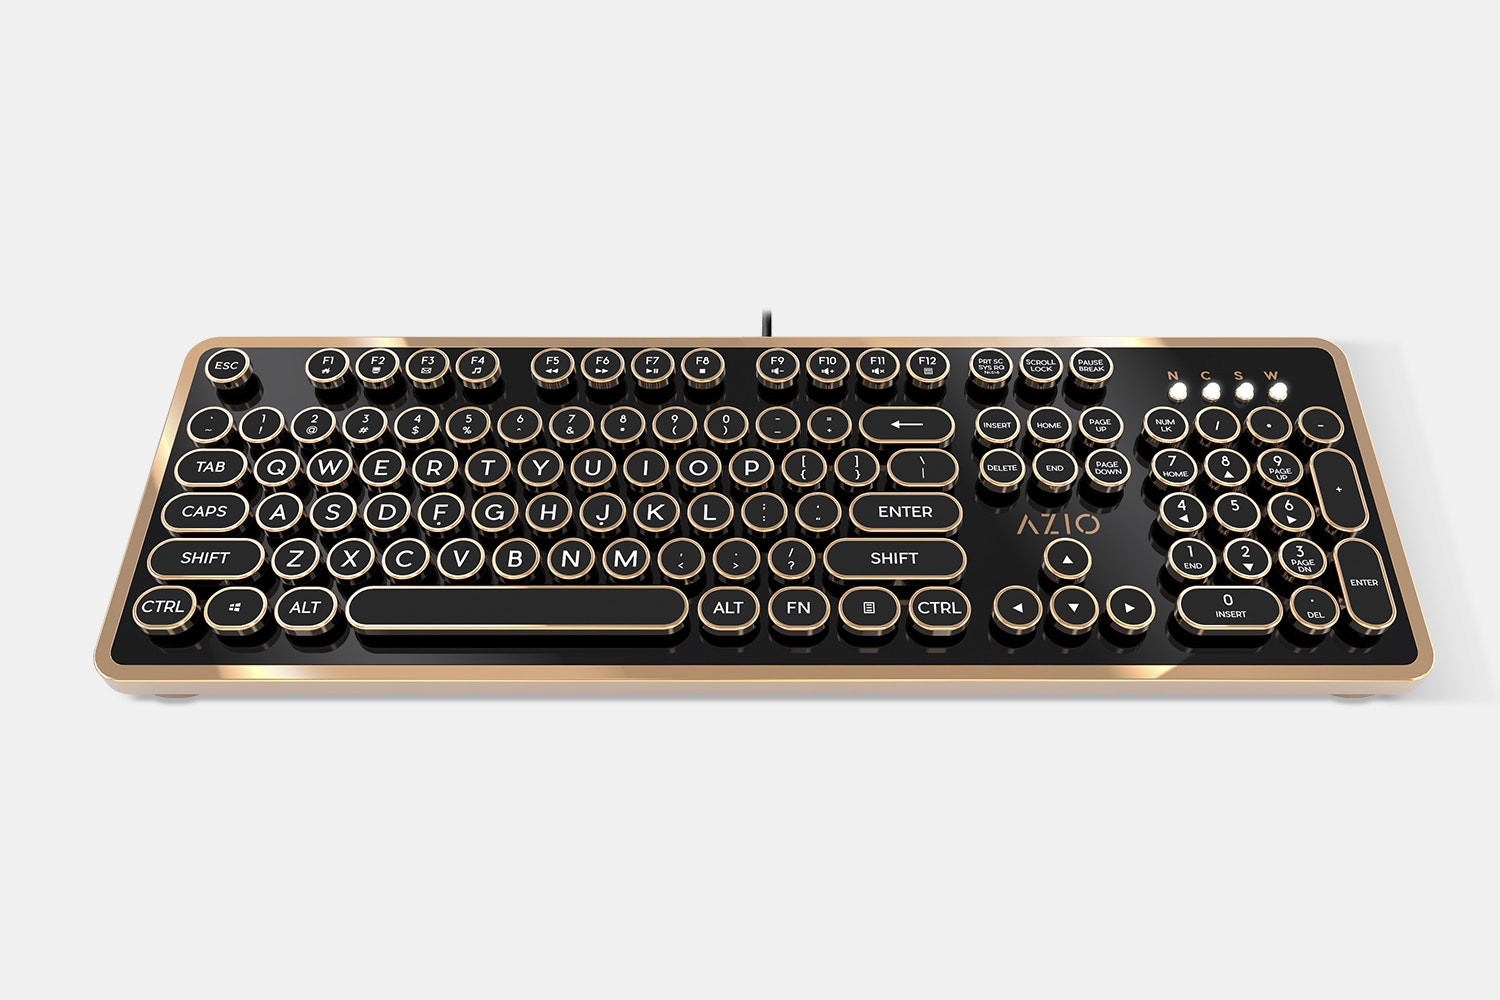 Azio Retro Mechanical Keyboard - Massdrop Exclusive